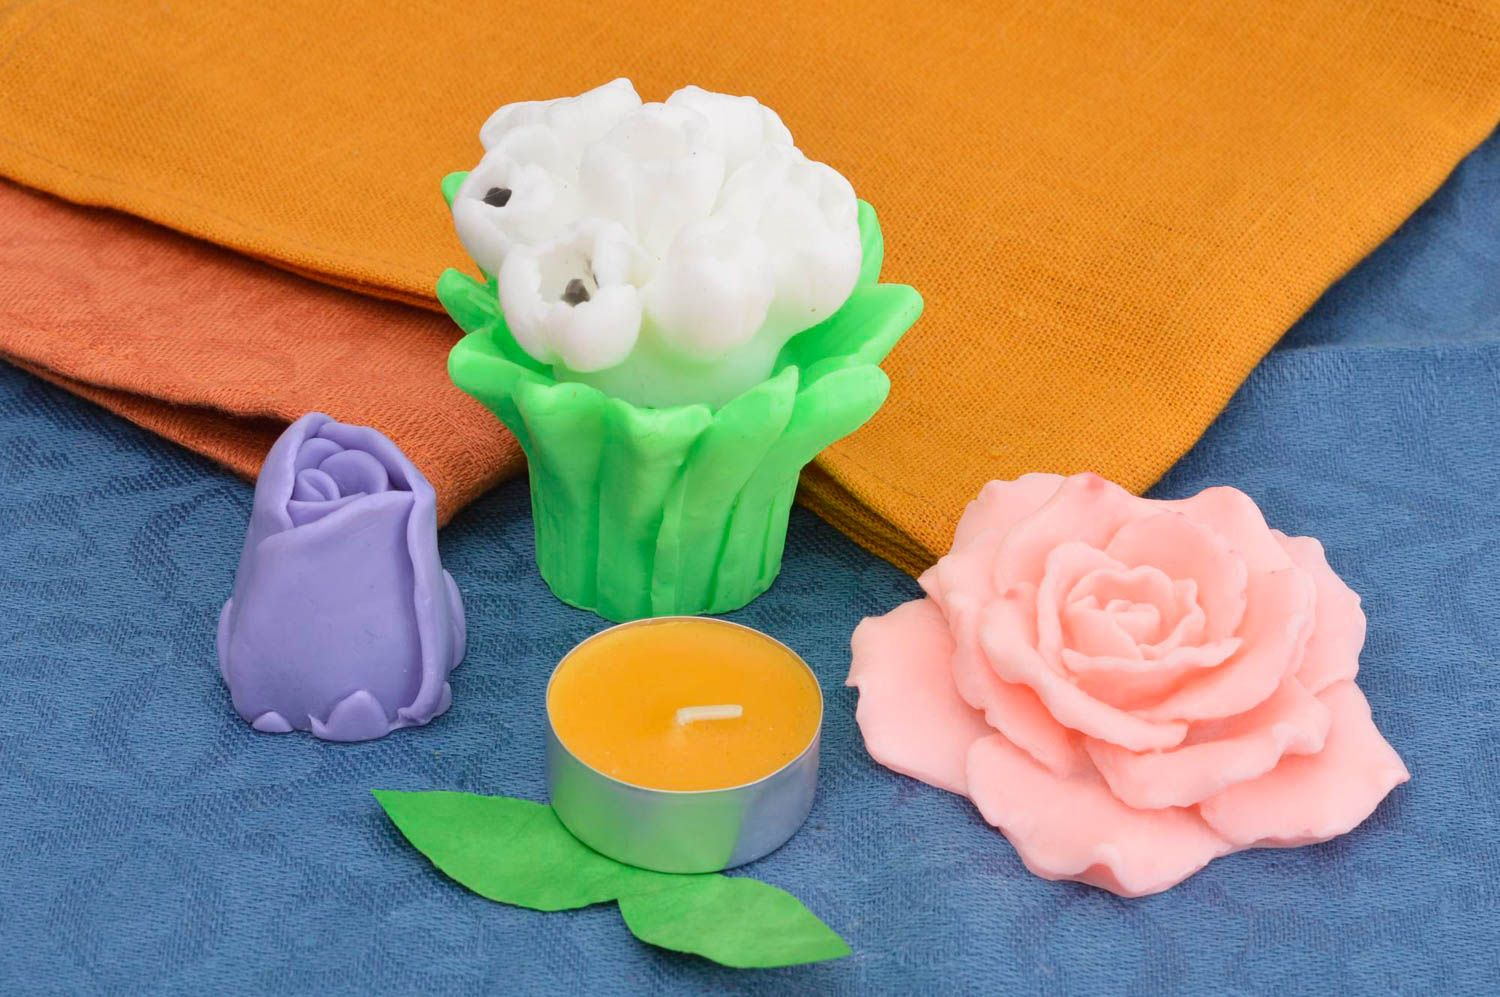 Handmade soap set natural cosmetics 4 flowers pieces natural soap gift idea photo 1